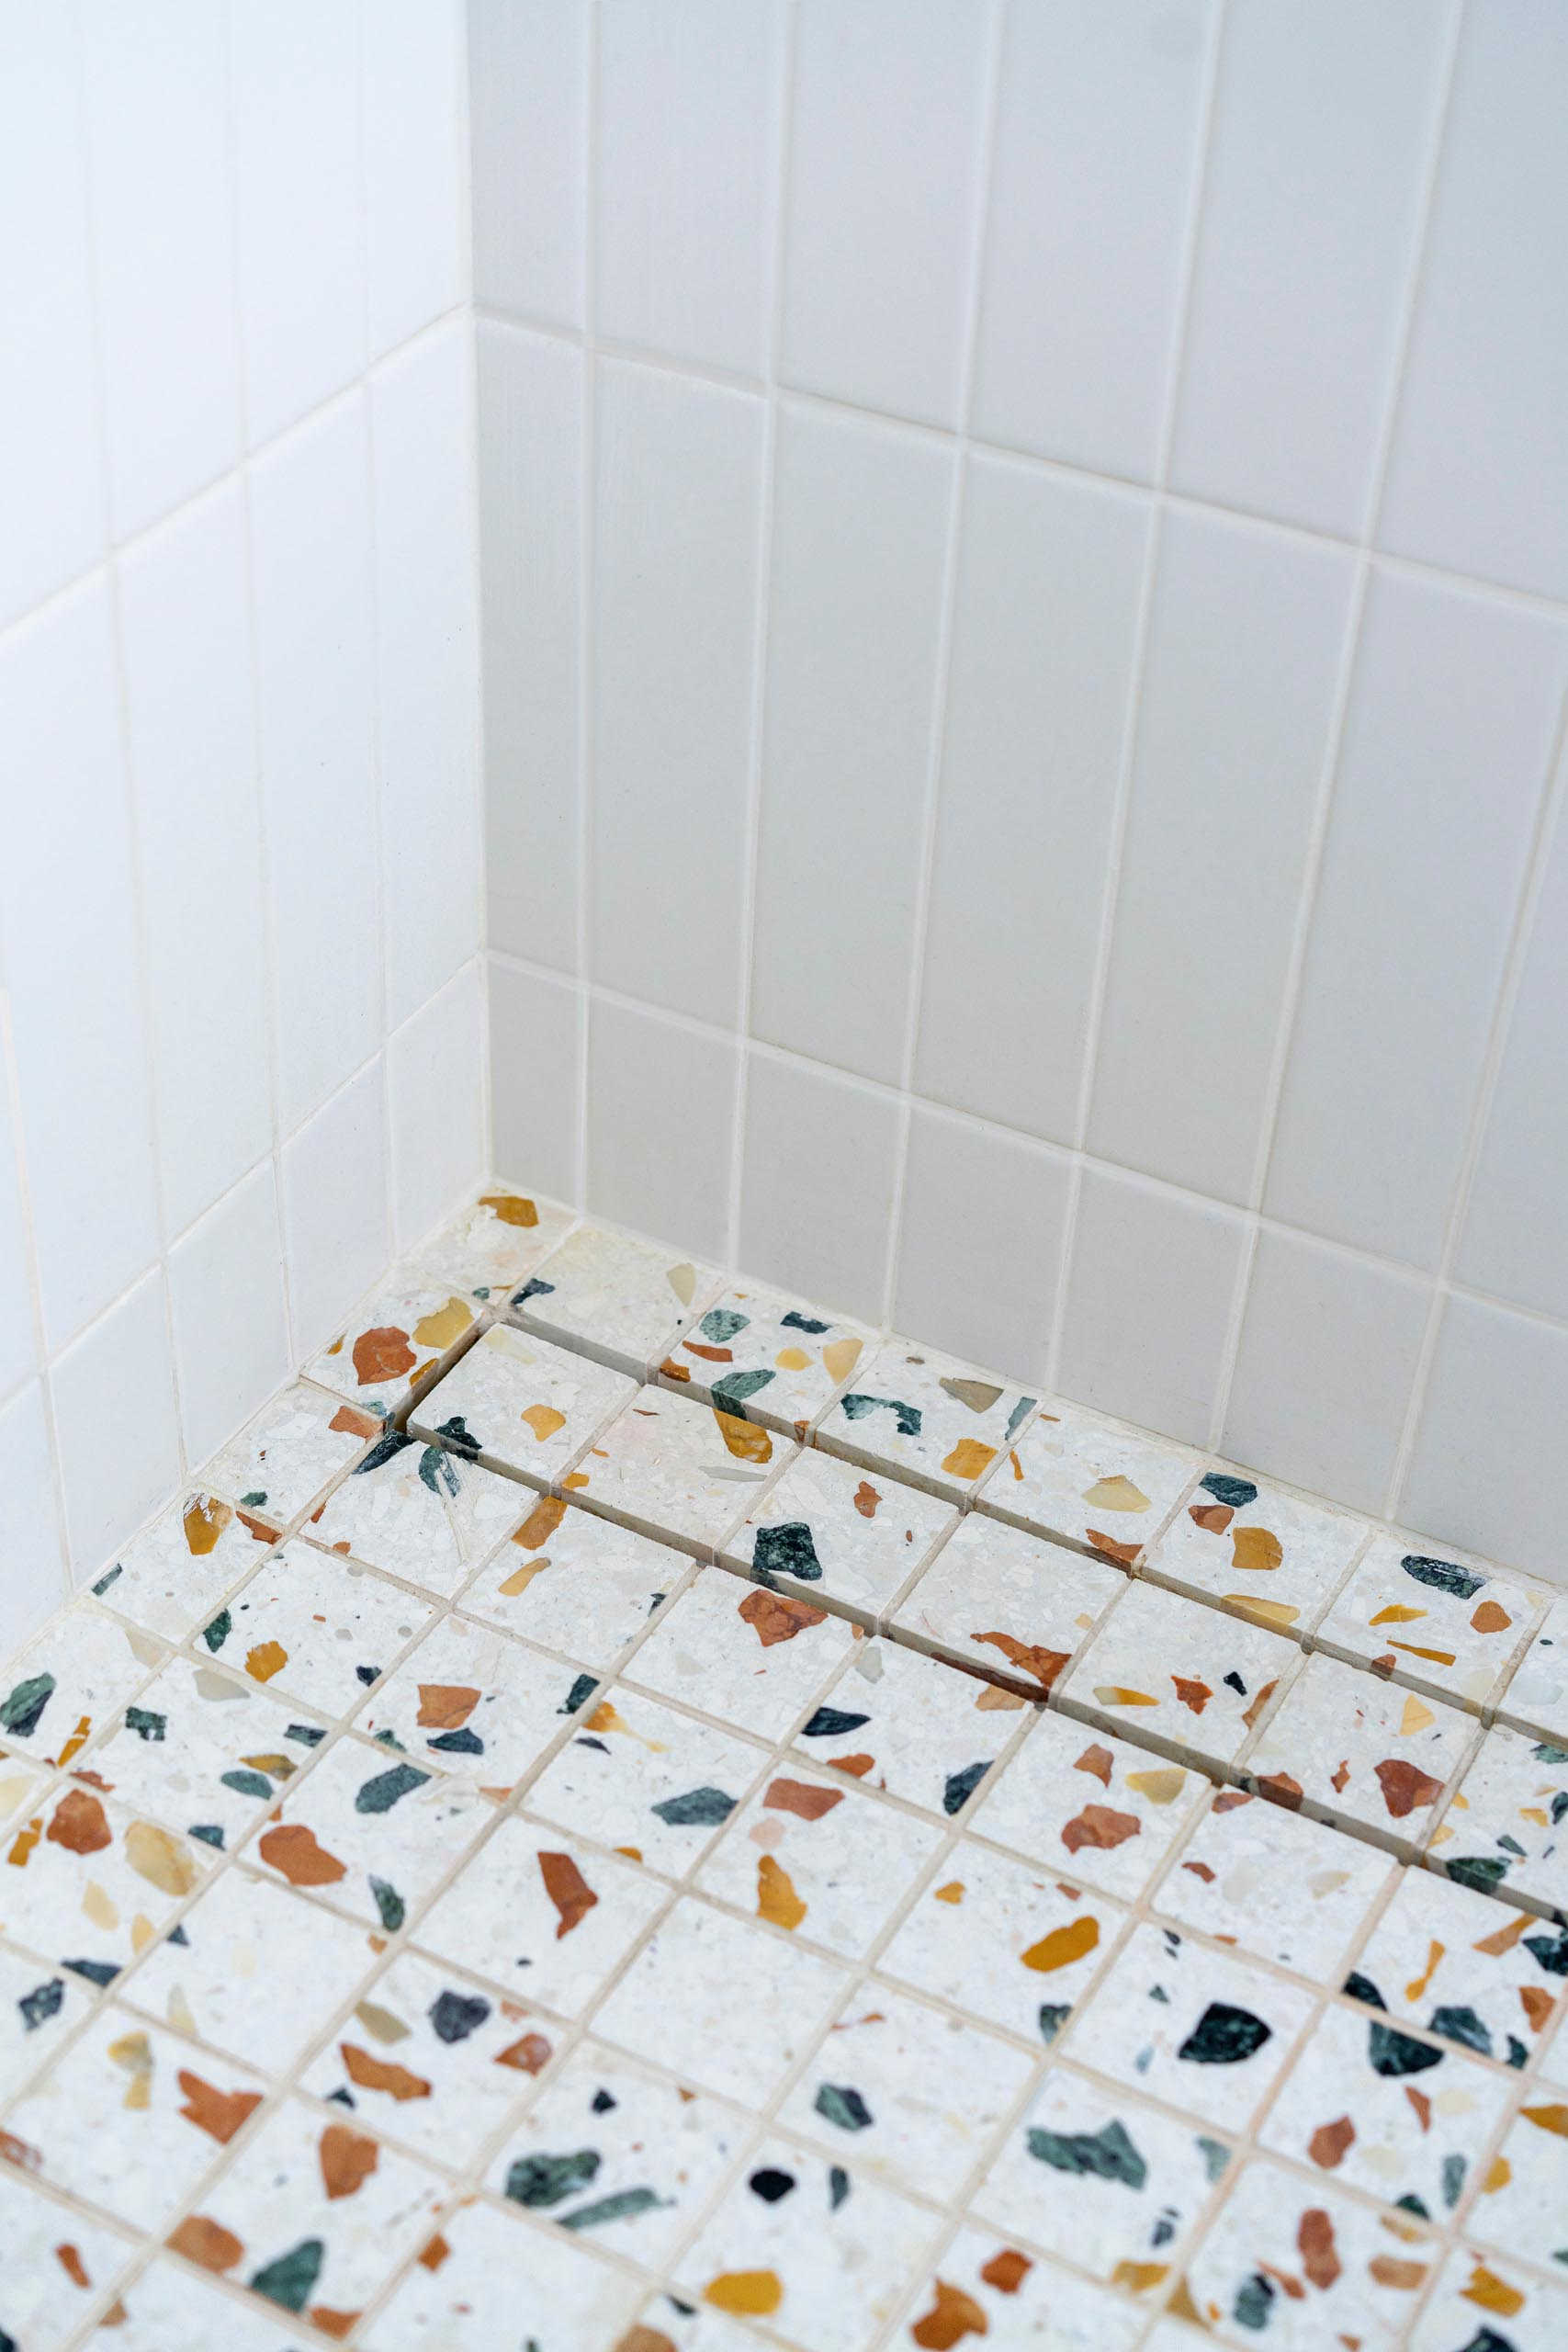 In this modern master bedroom bathroom, the shower features simple white tiles and a colorful terrazzo floor.